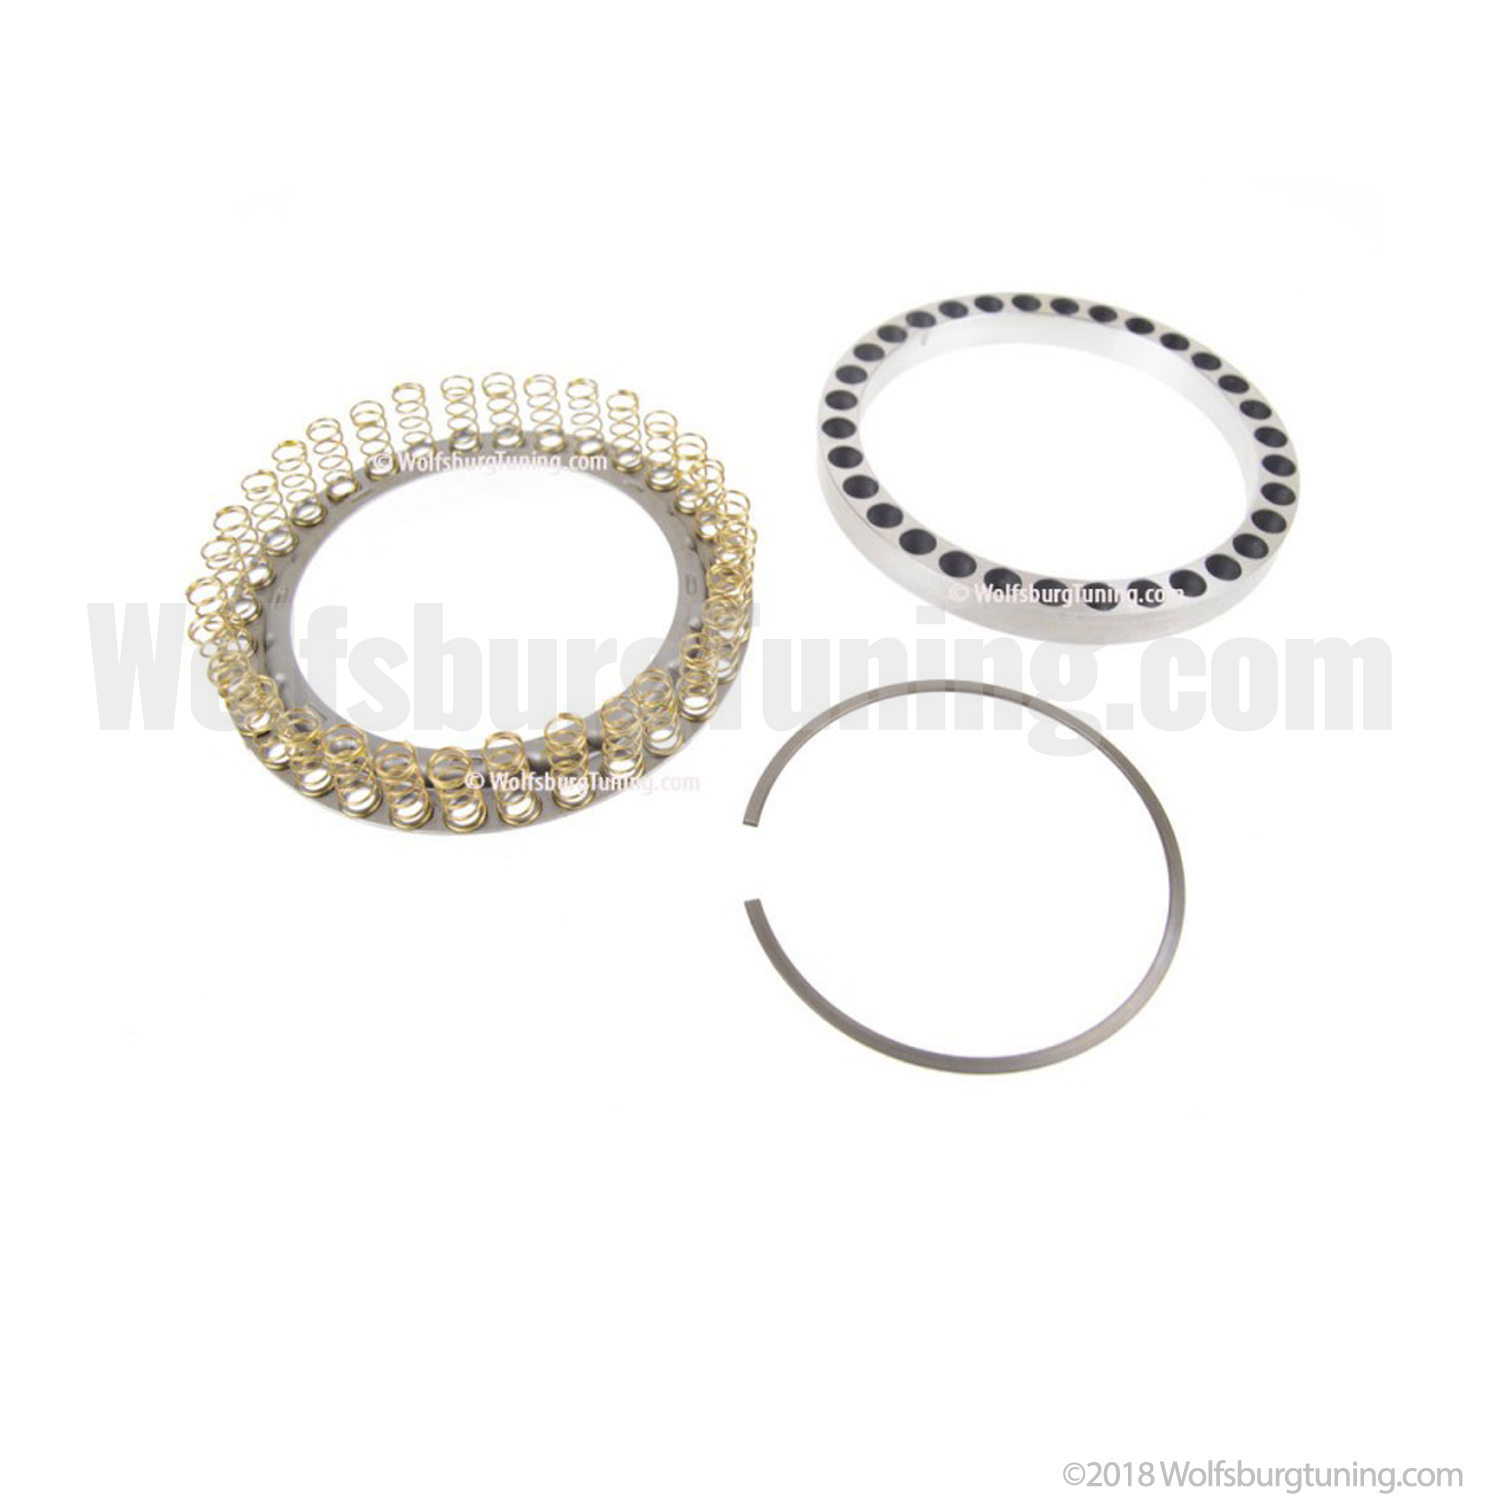 Automatic Transmission Reverse Drum Spring with Retainer